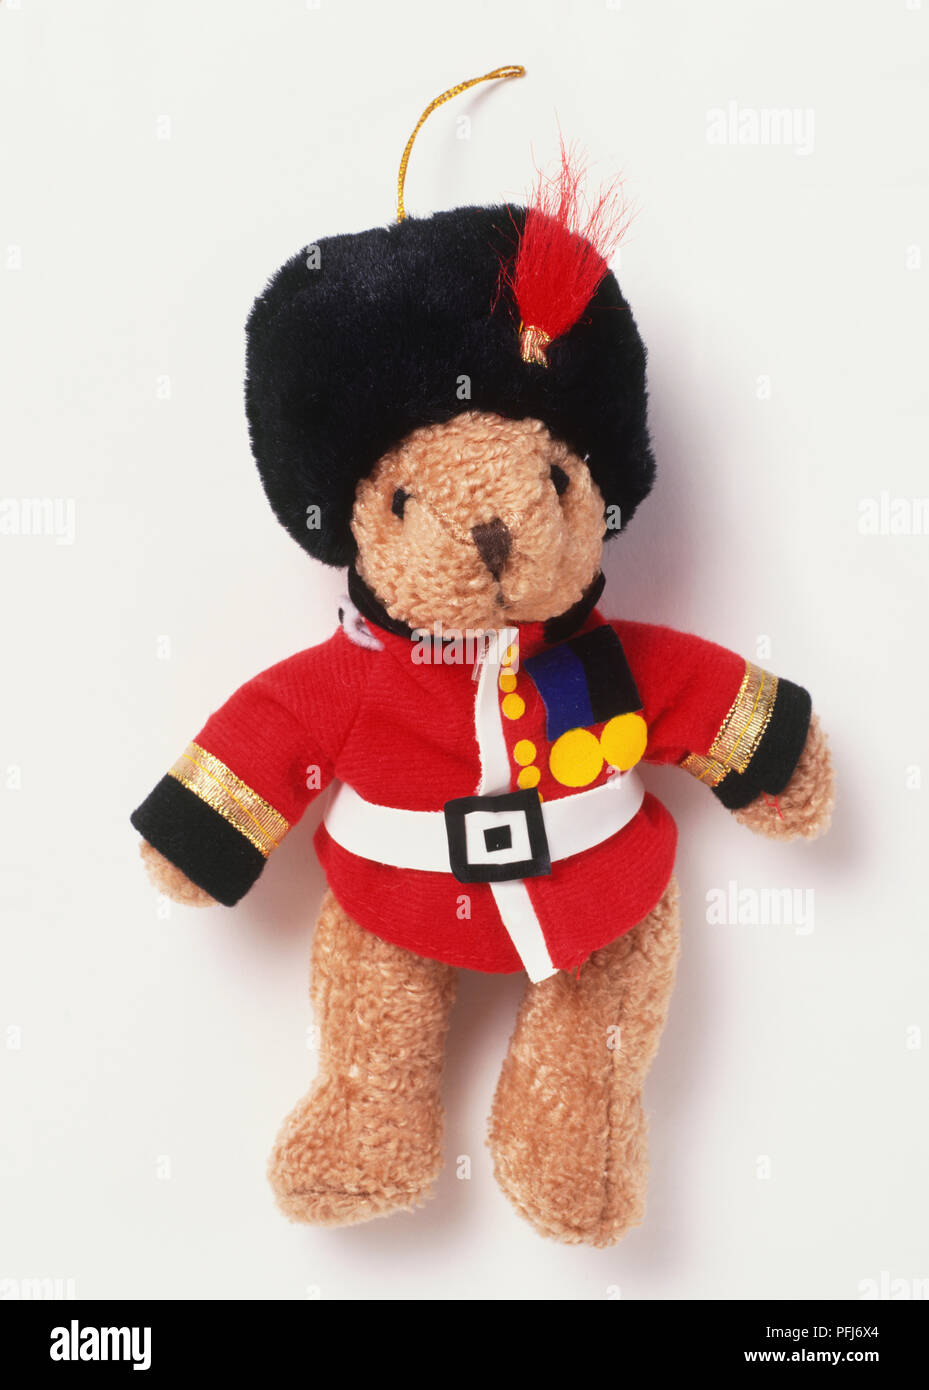 ec530338 Teddy bear dressed in traditional furry black hat and red jacket of ...